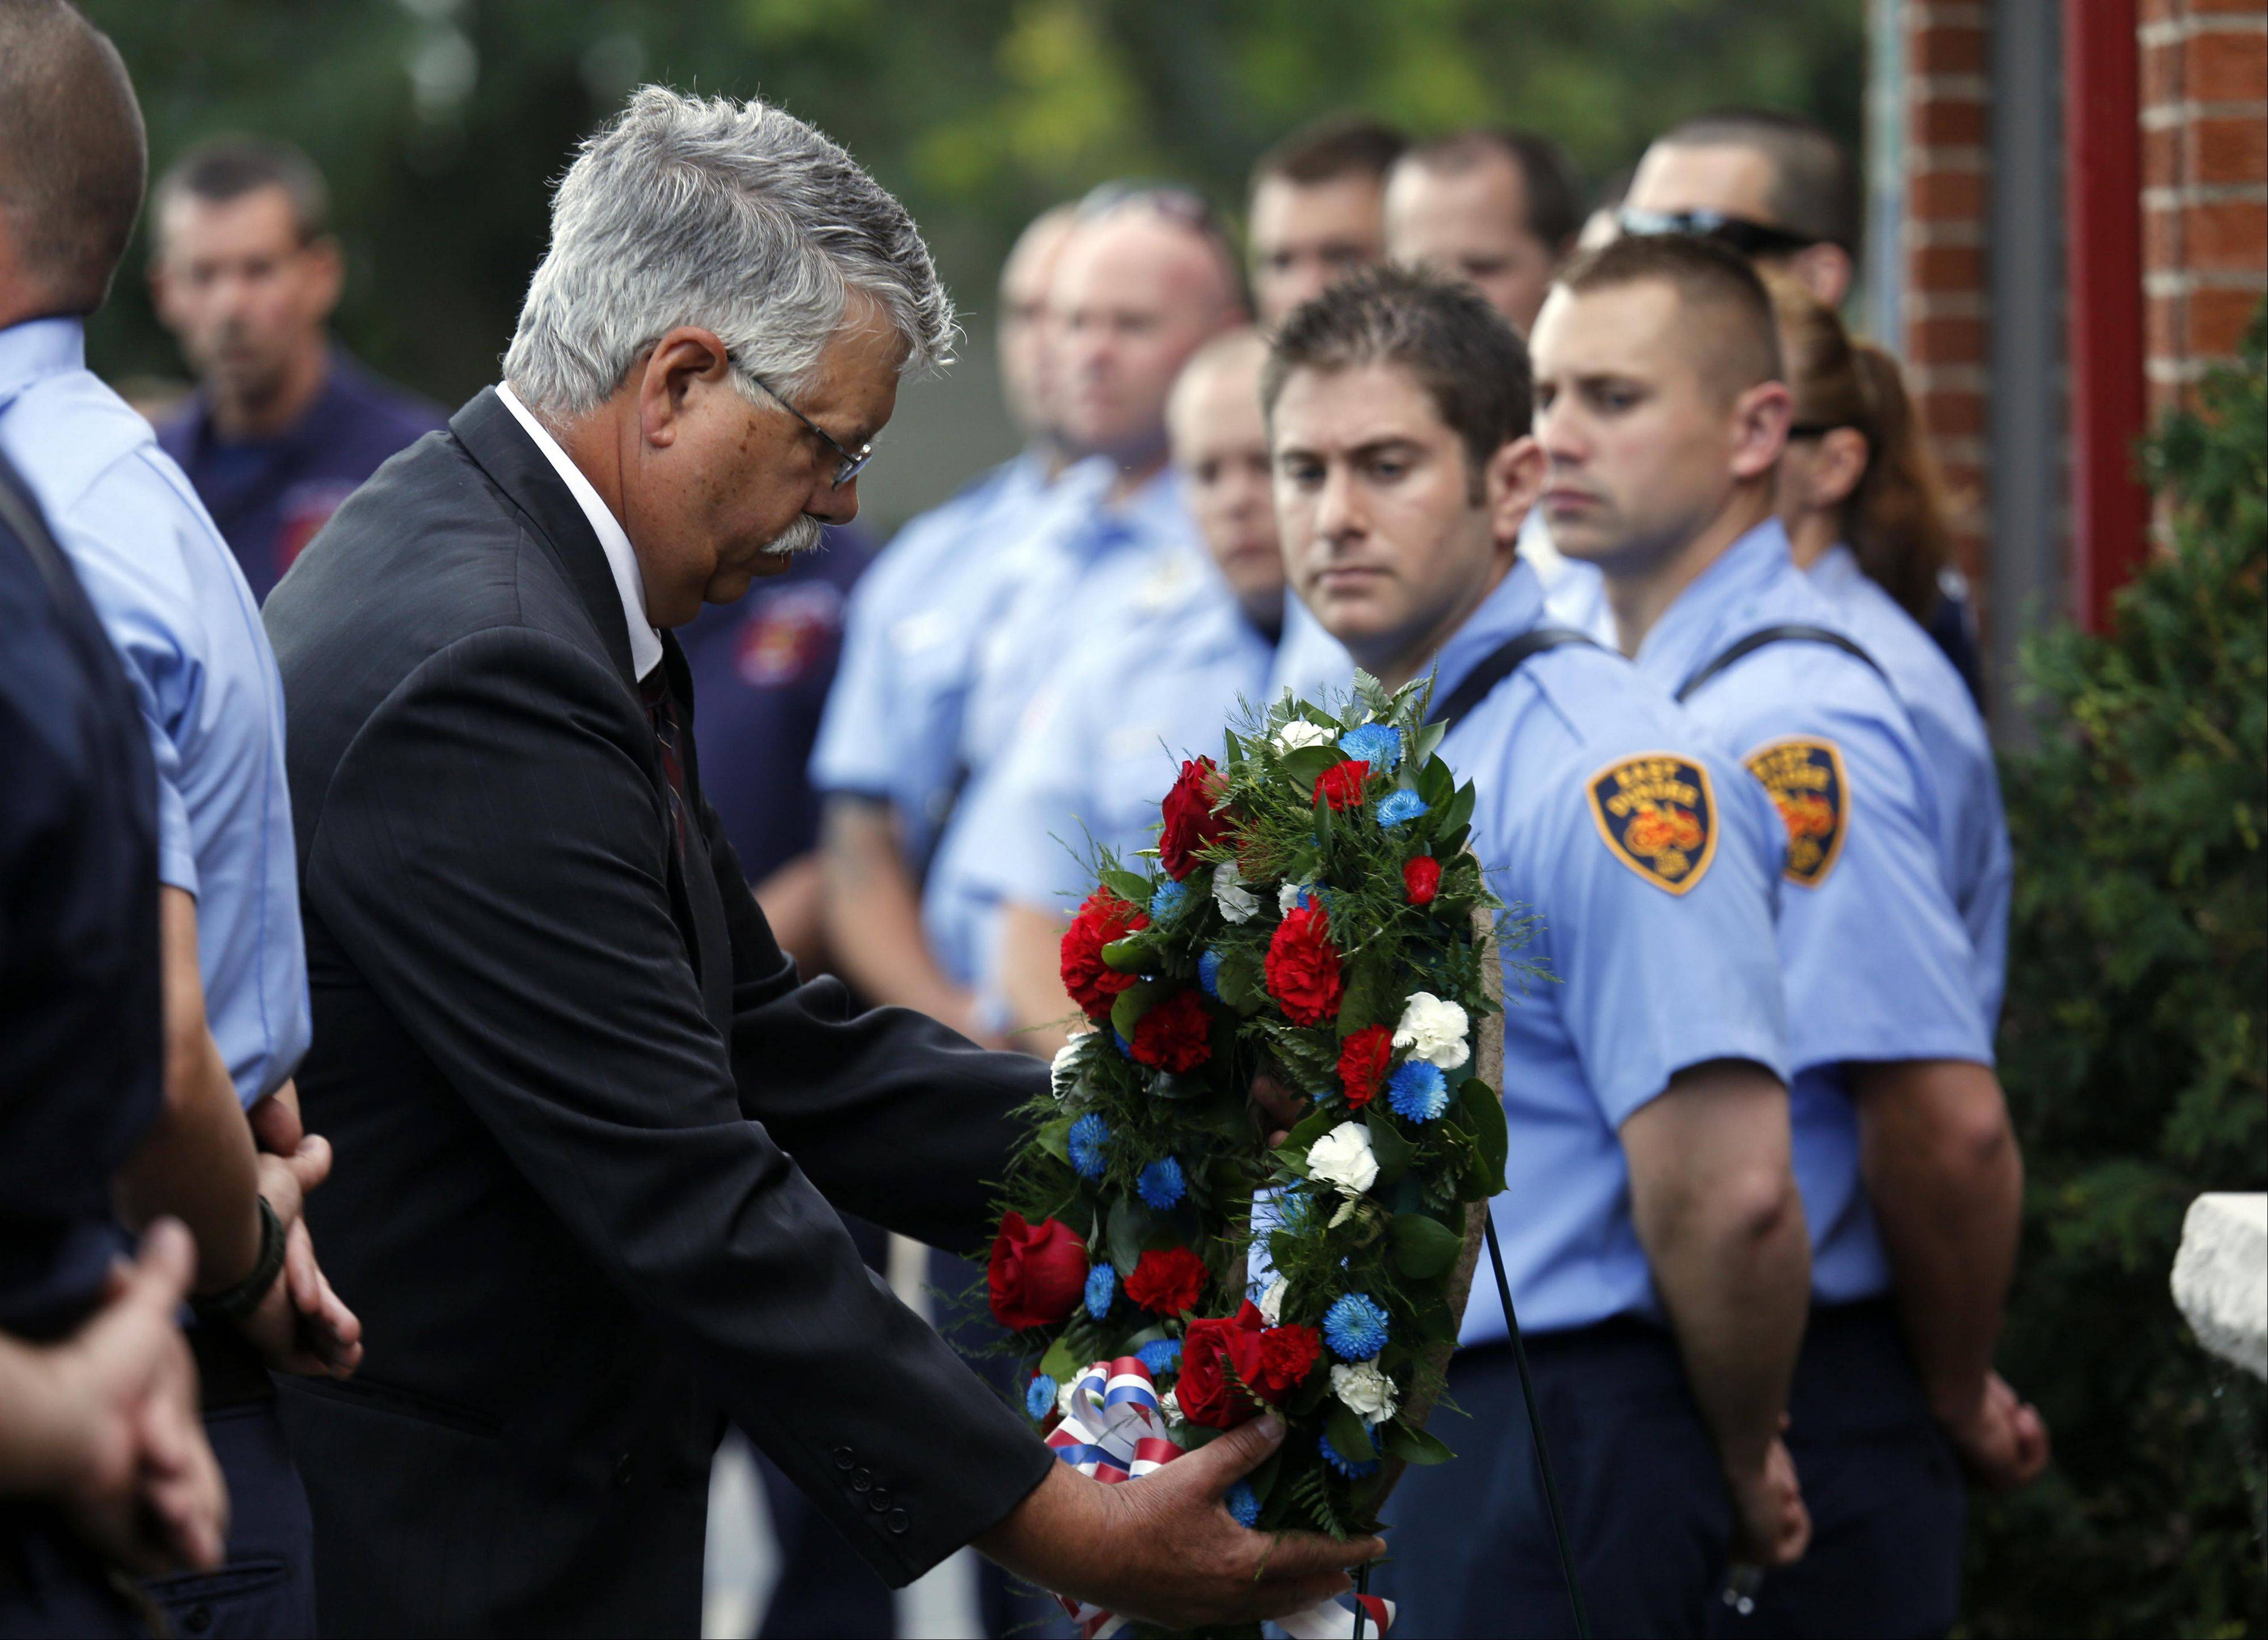 Carpentersville Village President Ed Ritter, places the wreath while Amazing Graze plays during prayer during the Sept. 11 ceremony Wednesday at Carpentersville Fire Station 1.